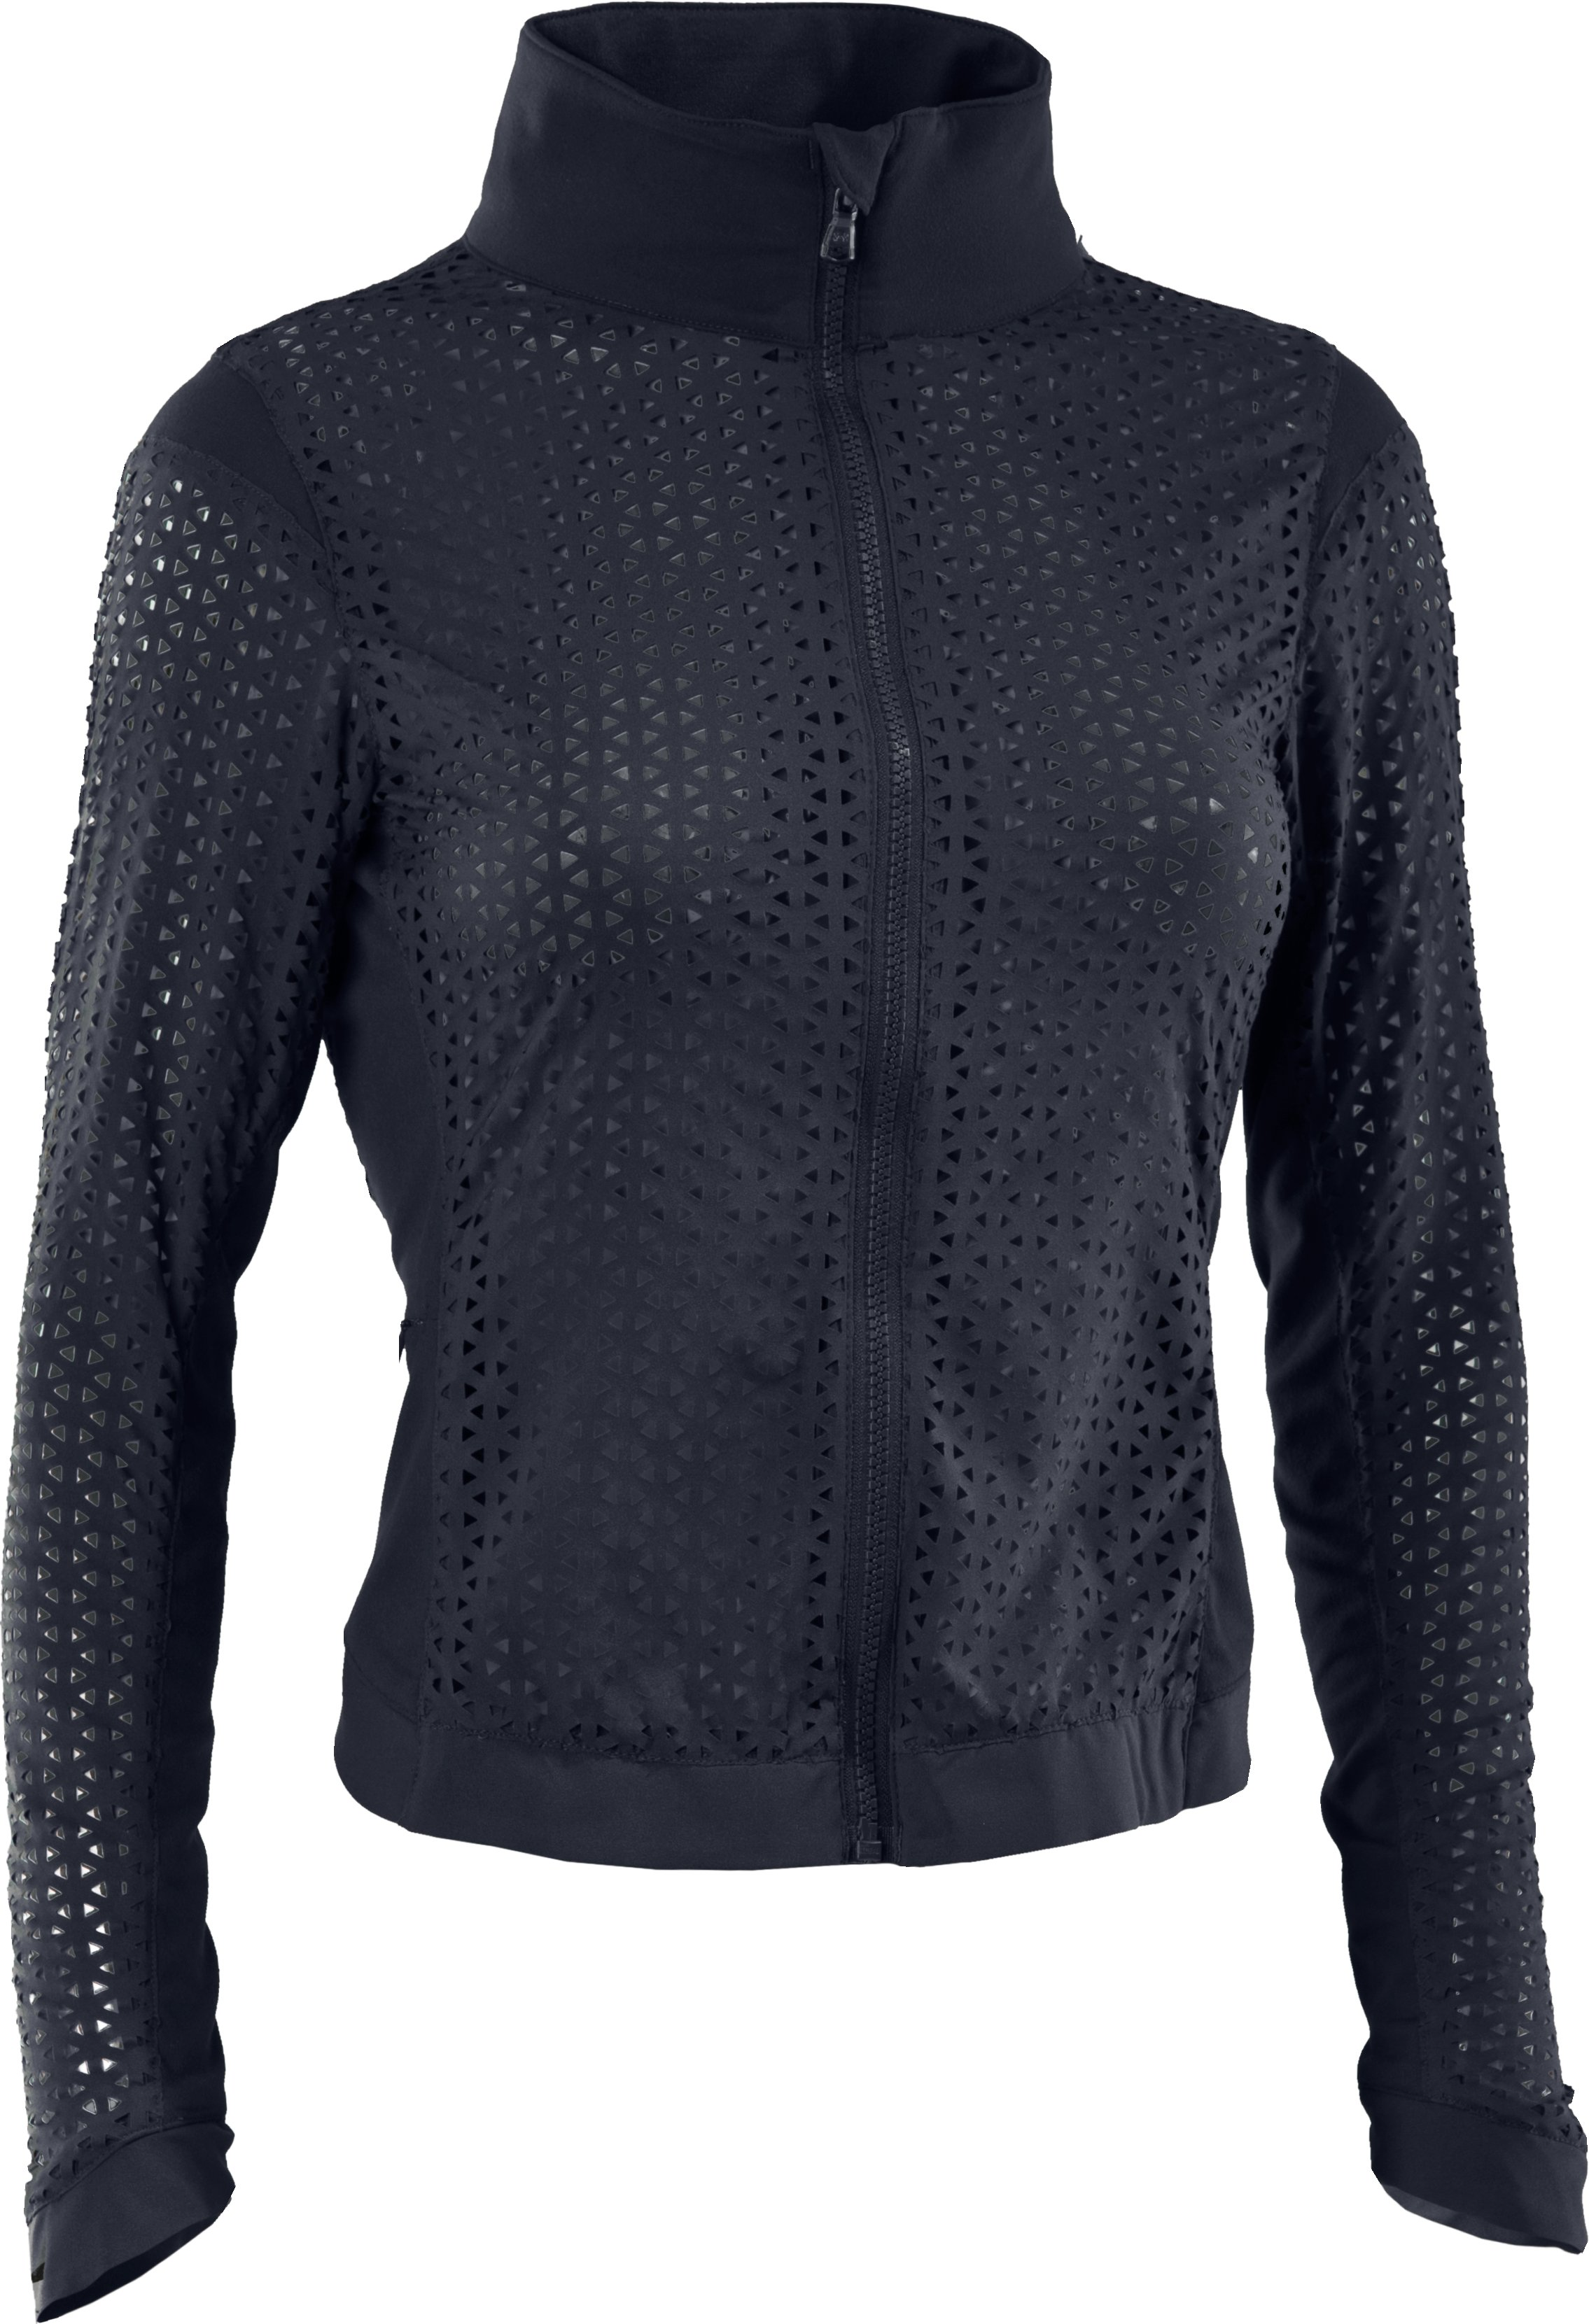 Women's UA Studio See Me Through Jacket, ANTHRACITE, undefined